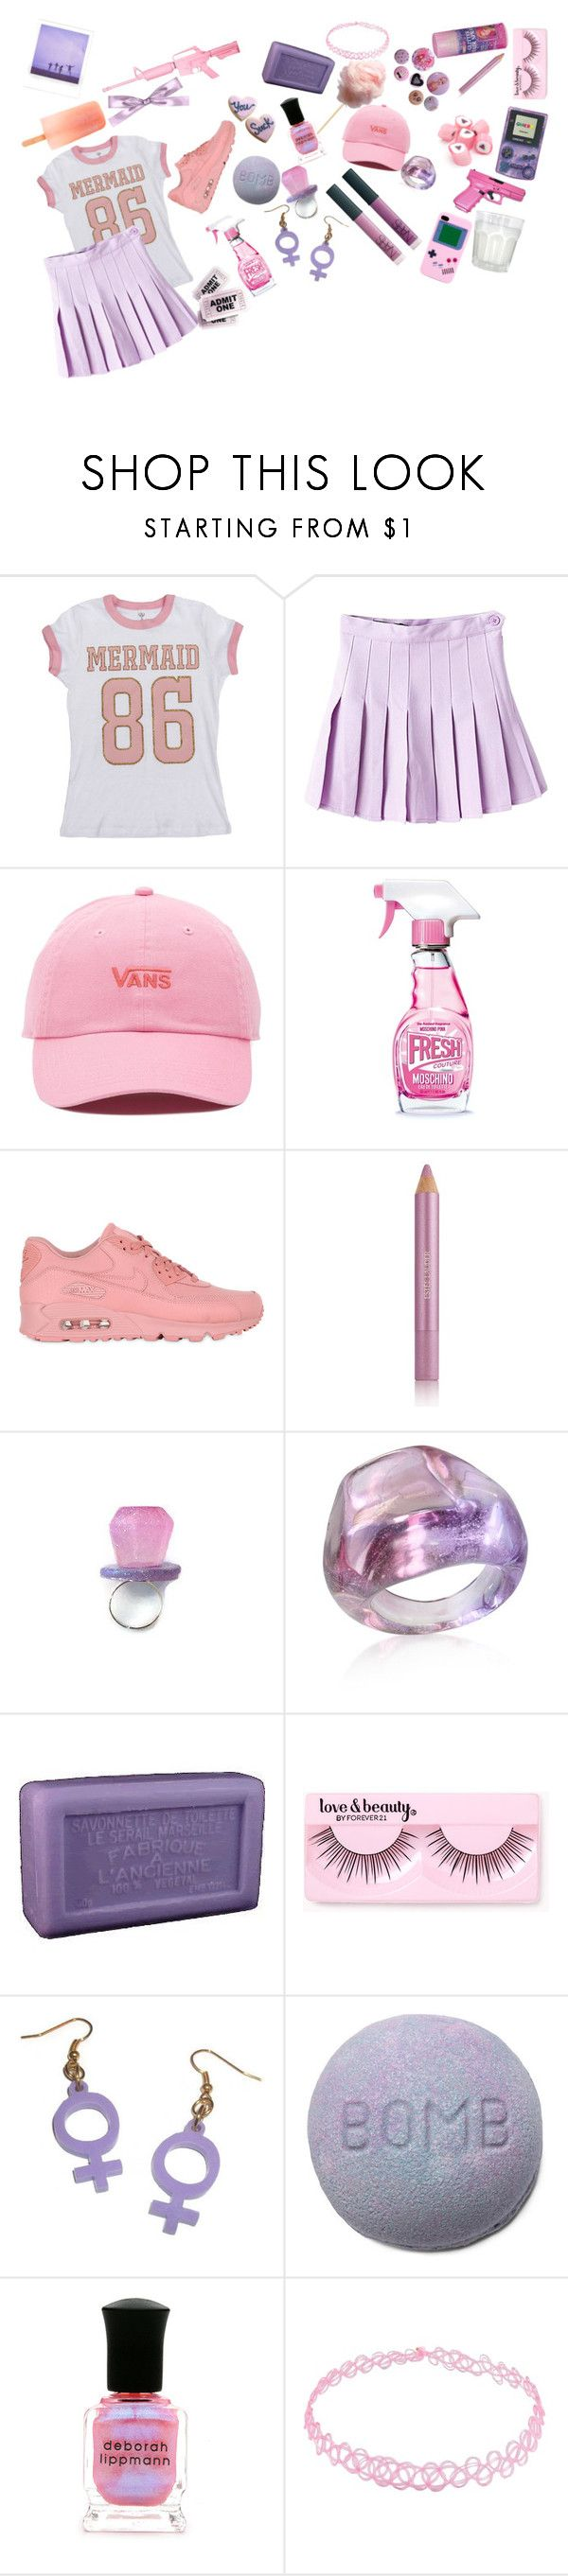 """""""Love dont live here anymore"""" by isobelle206 ❤ liked on Polyvore featuring Vans, Moschino, NIKE, Estée Lauder, Antica Murrina, Savon De Marseille, Forever 21, Deborah Lippmann and Hello Kitty"""